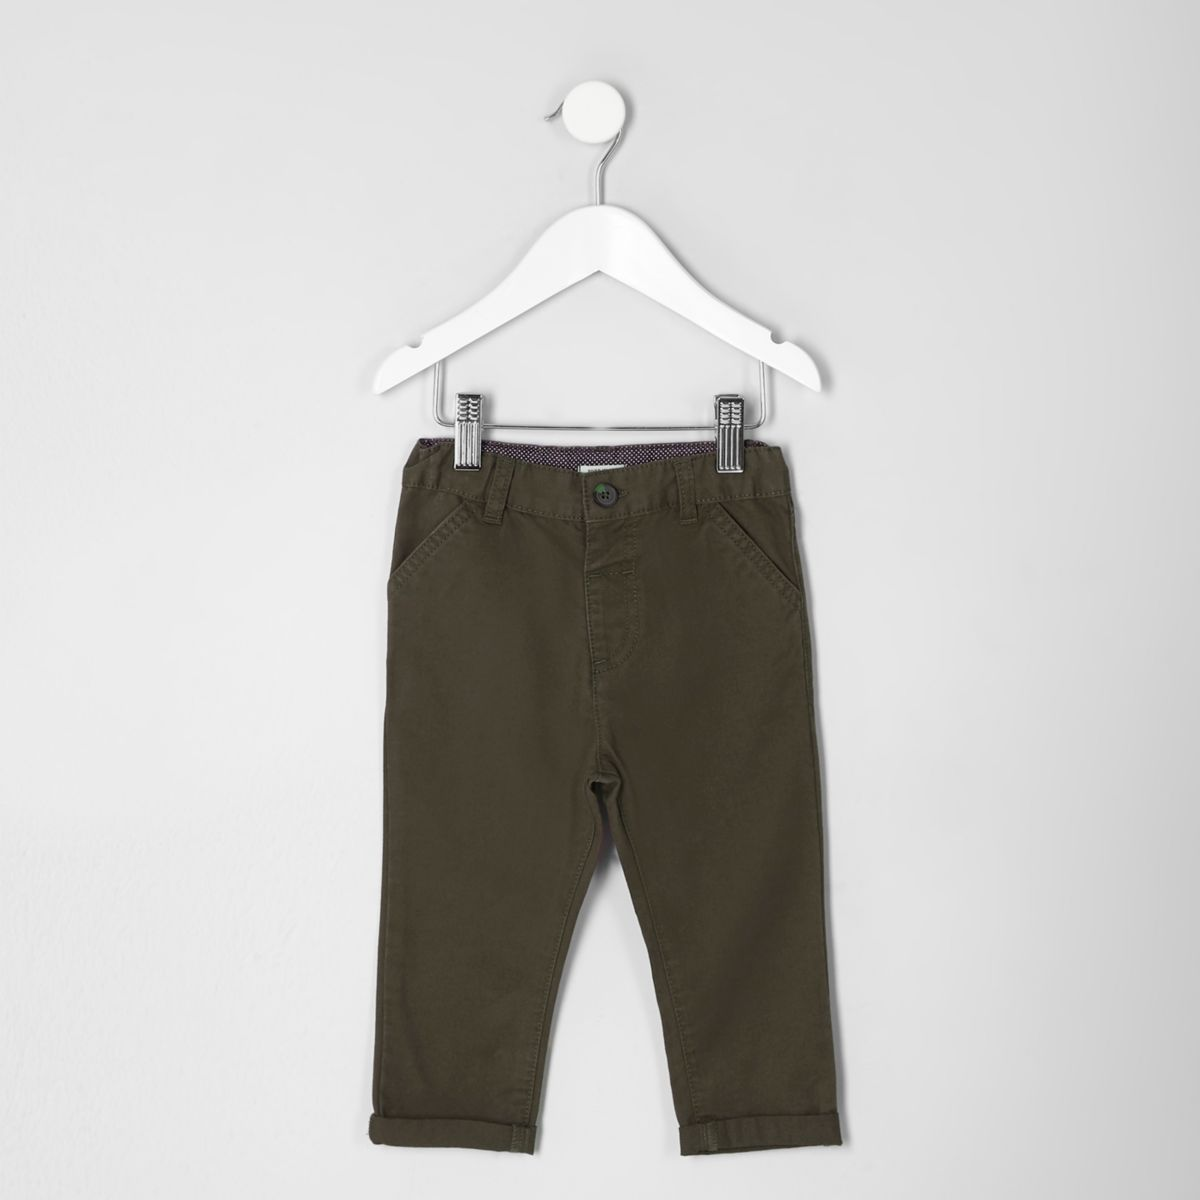 Mini boys khaki green chino pants